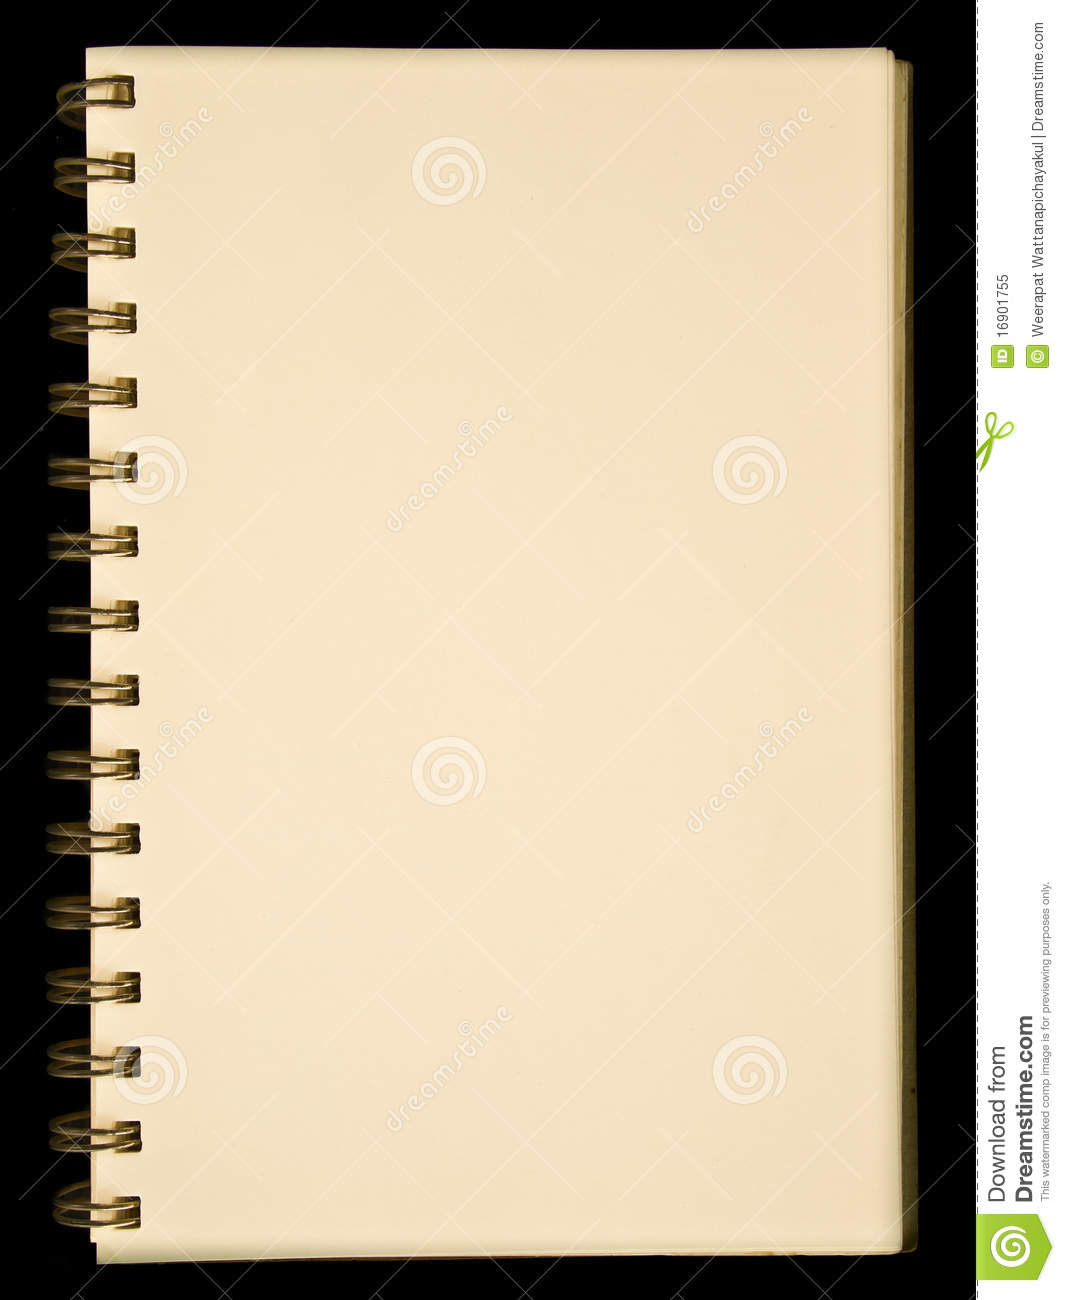 Blank Yellow Page Notebook Royalty Free Stock Photo - Image: 16901755